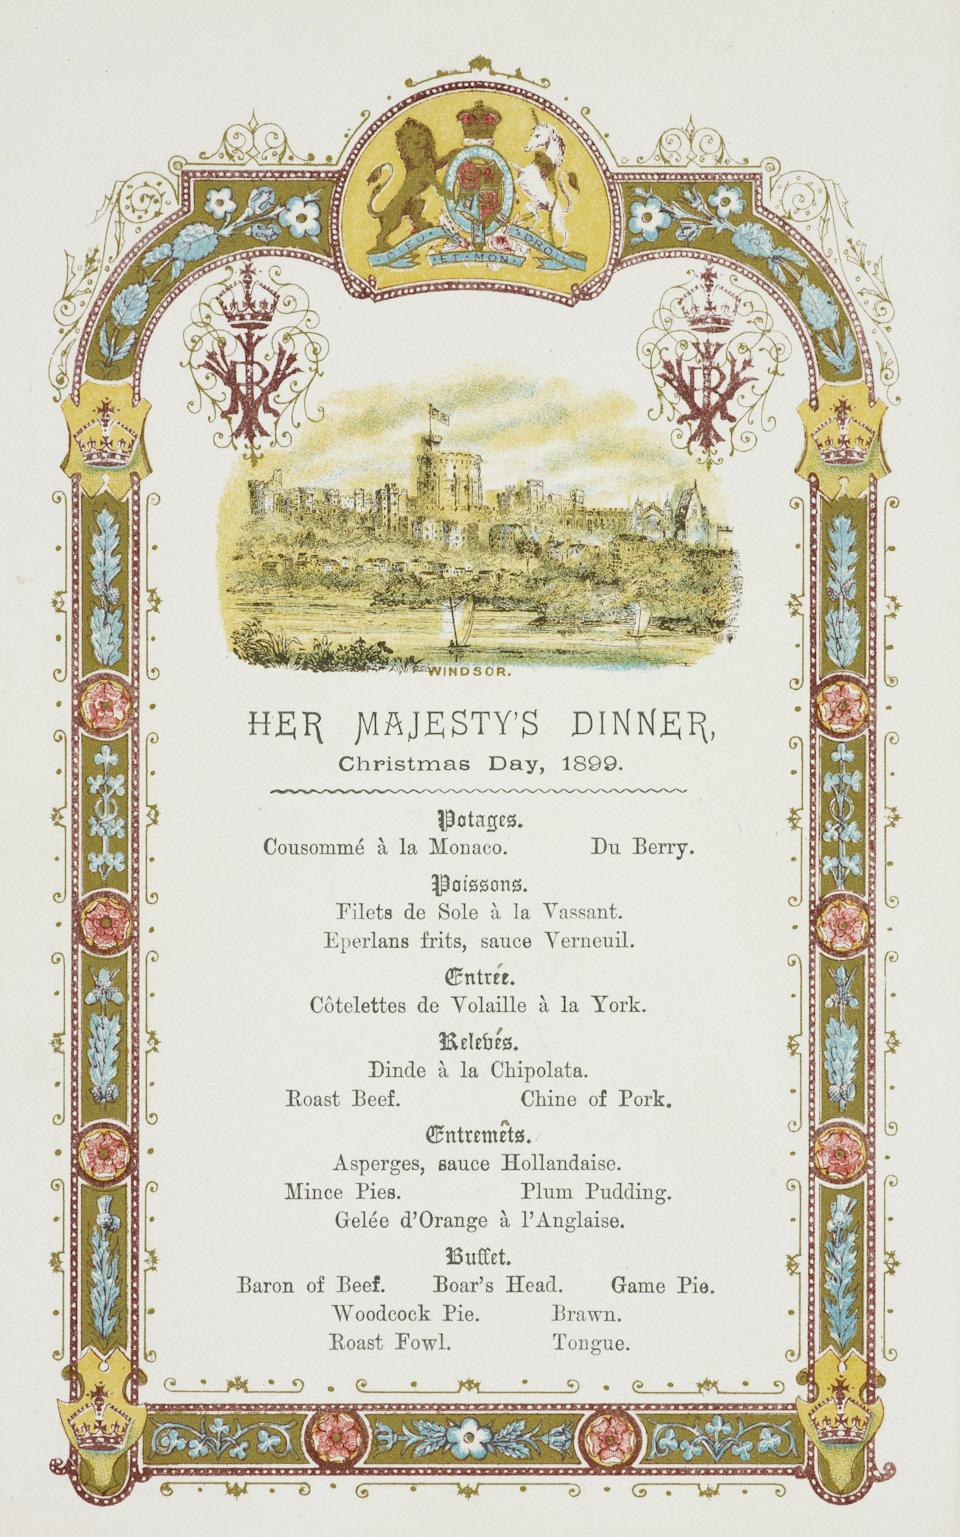 Menu for Queen Victoria's dinner, Christmas Day, 1899 (Royal Archives / © Her Majesty Queen Elizabeth II 2018)